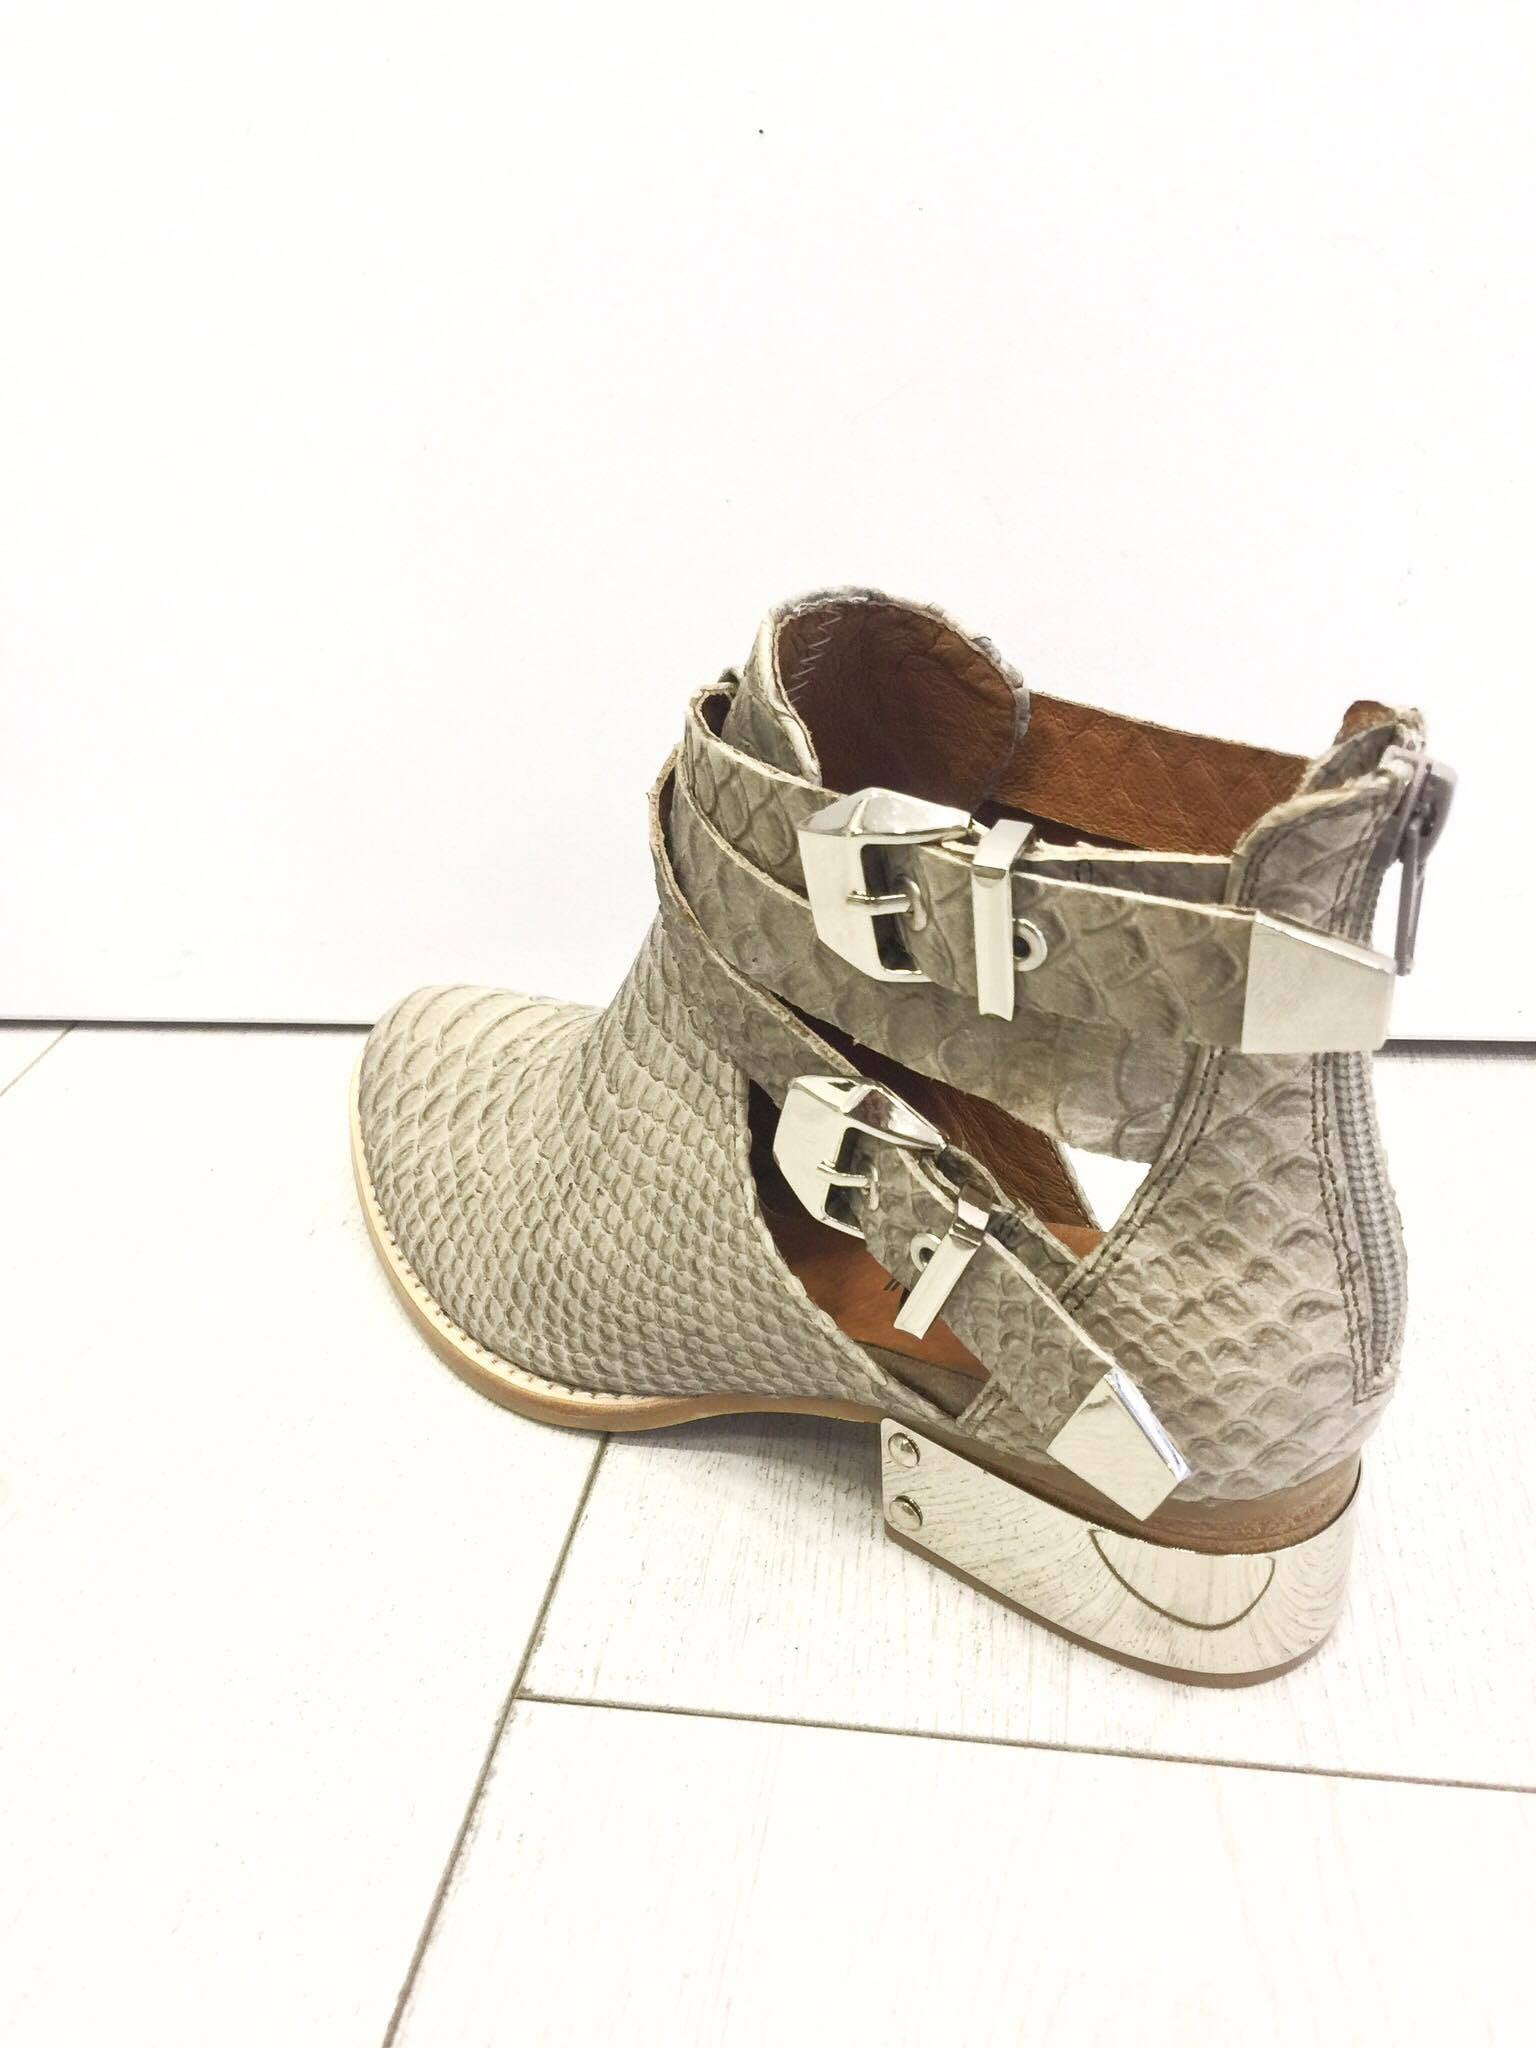 Jeffrey cambell - Everly